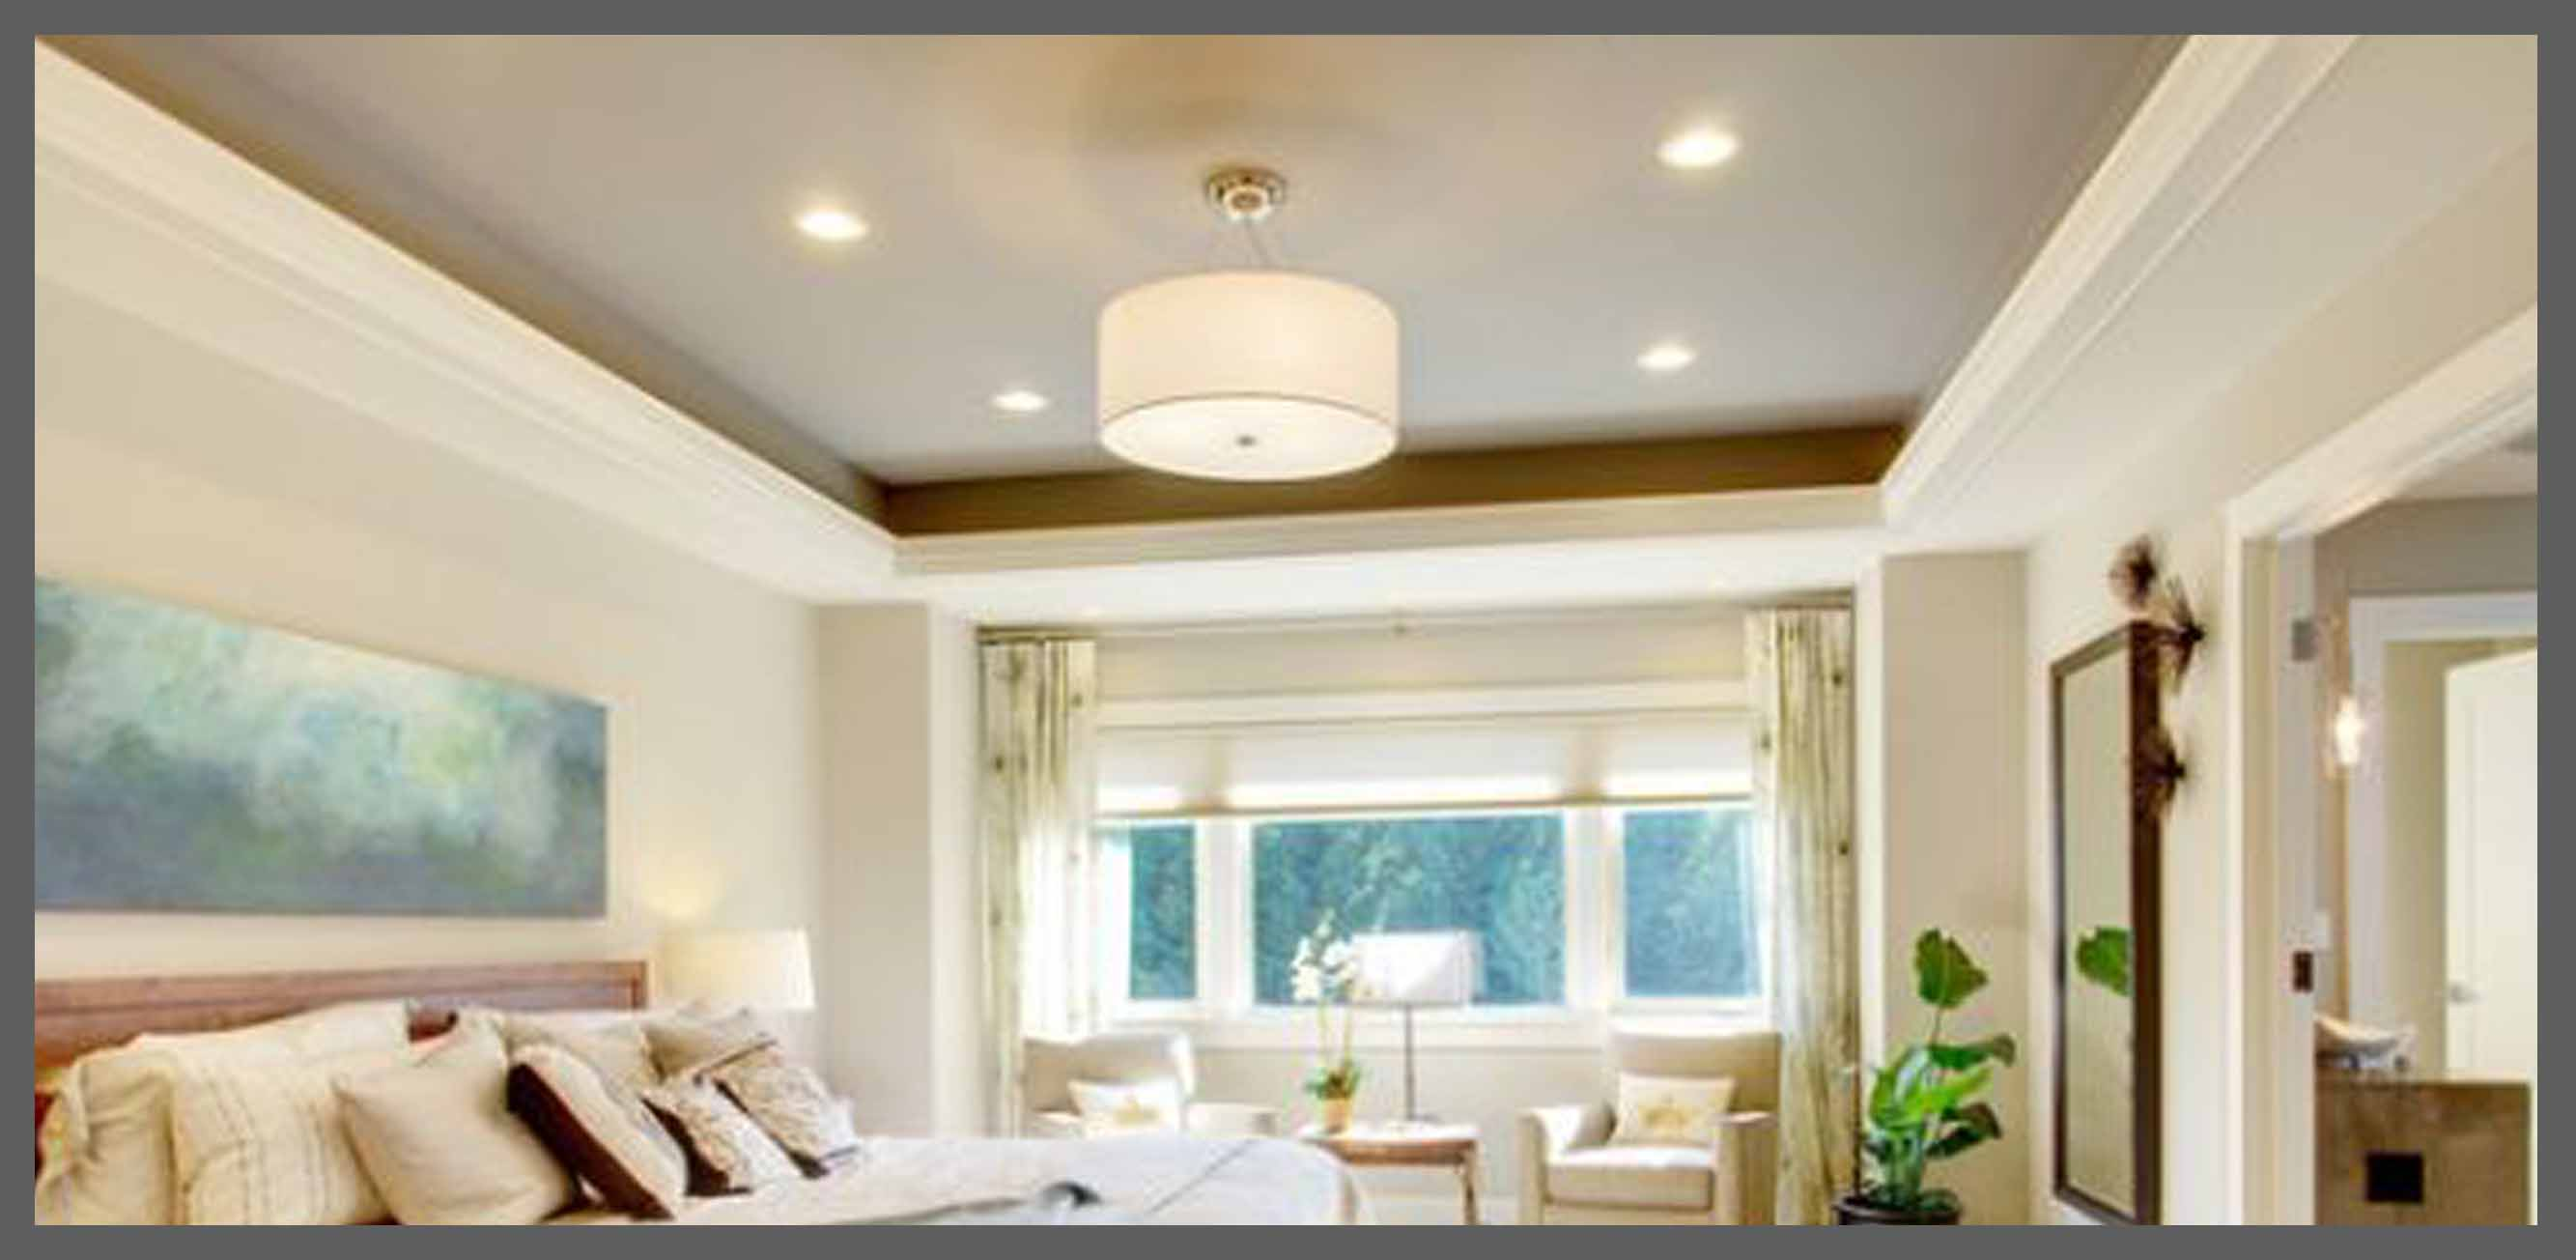 Fantastic Home Fall Ceiling Design Images - Home Decorating ...